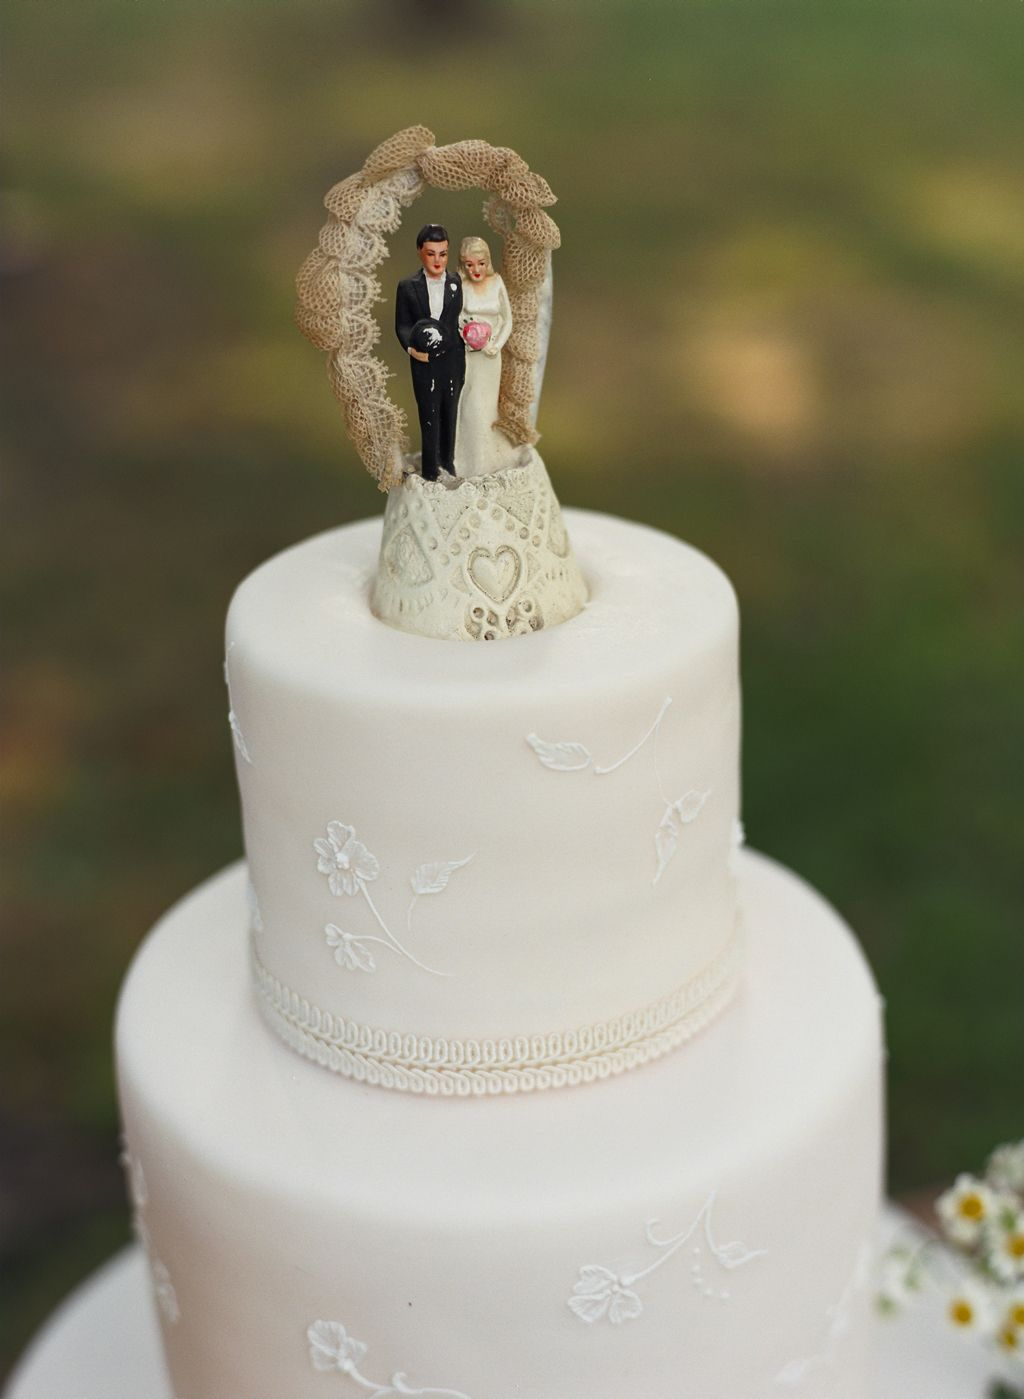 old-fashioned-cake-toppers-beach-weddings-delicate-cake-design ...